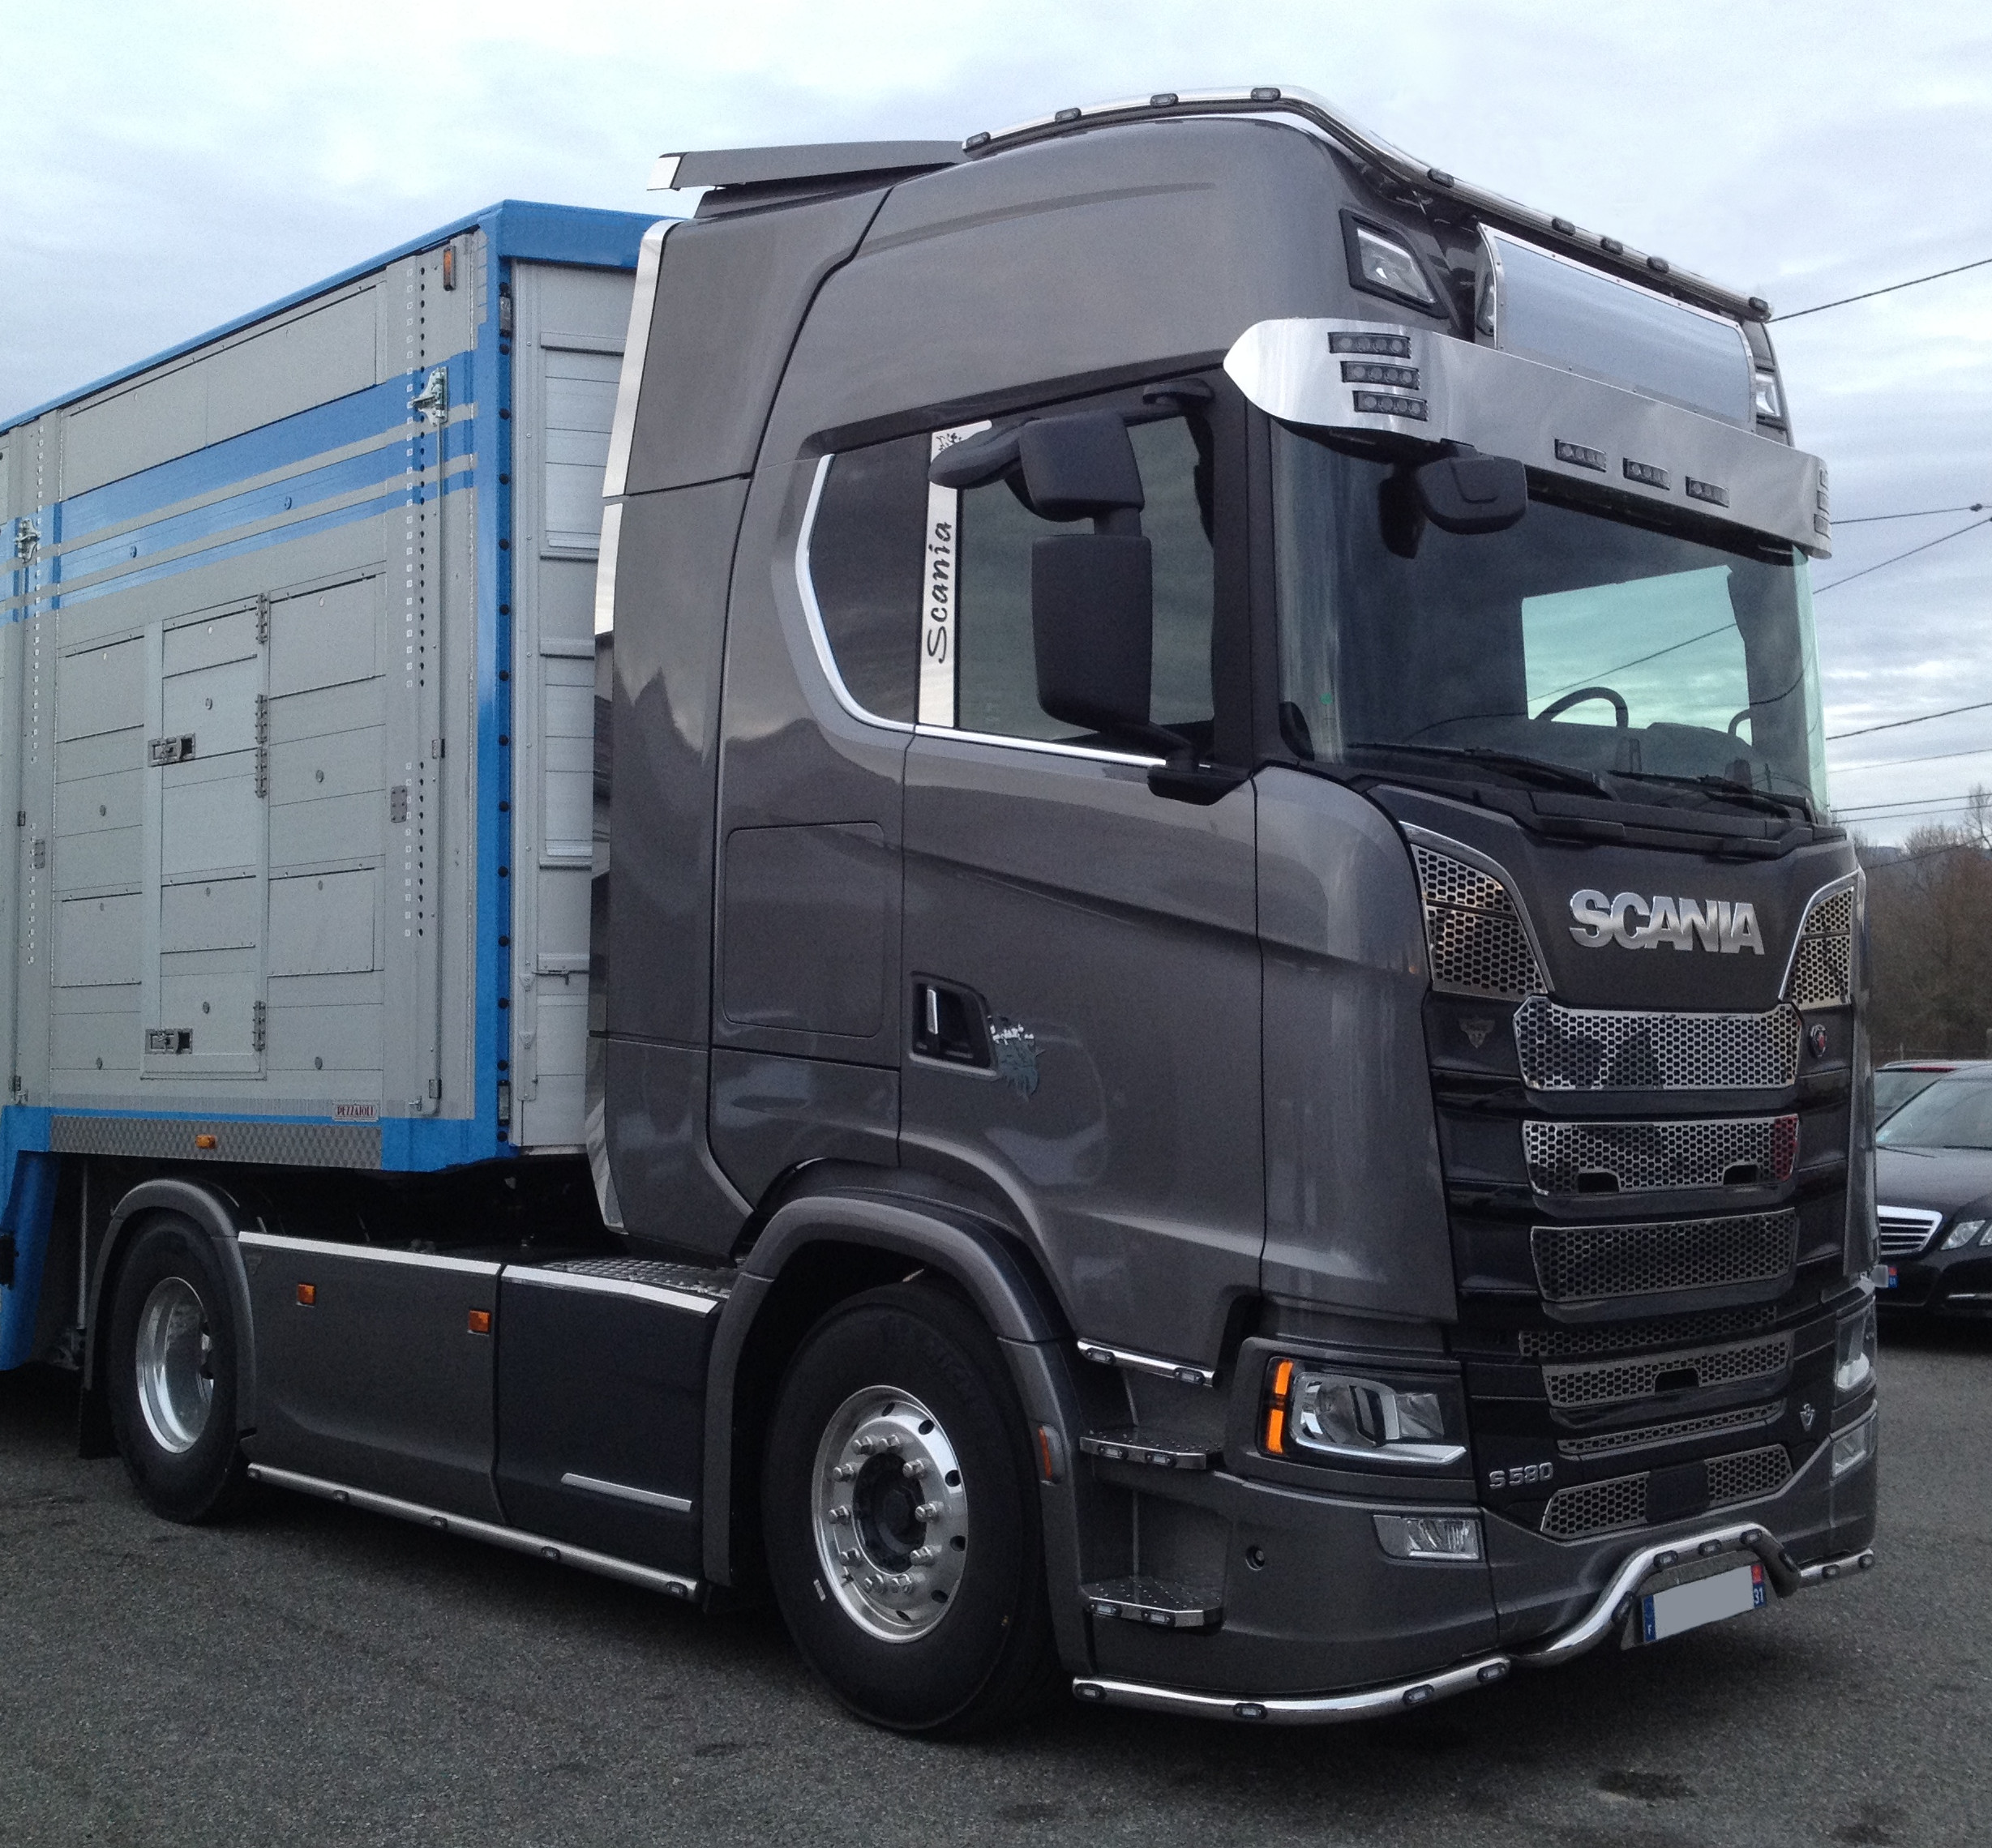 Rampe de phares XL Scania NTG - 13 leds